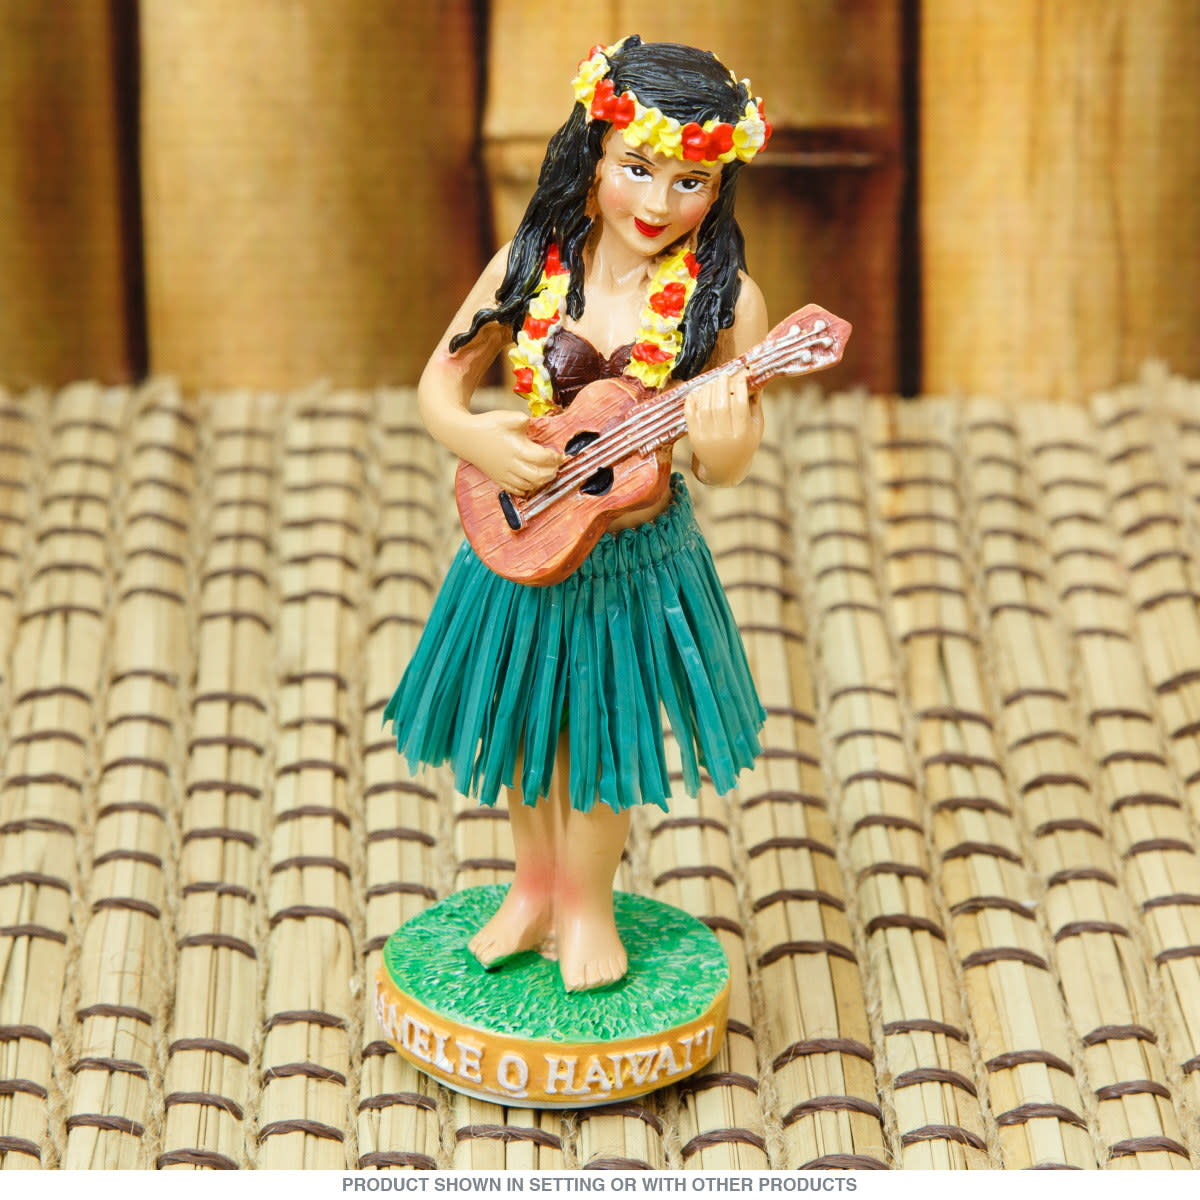 Hula remains sexually evocative in modern American culture, despite a deep cultural significance to Native Hawaiians.